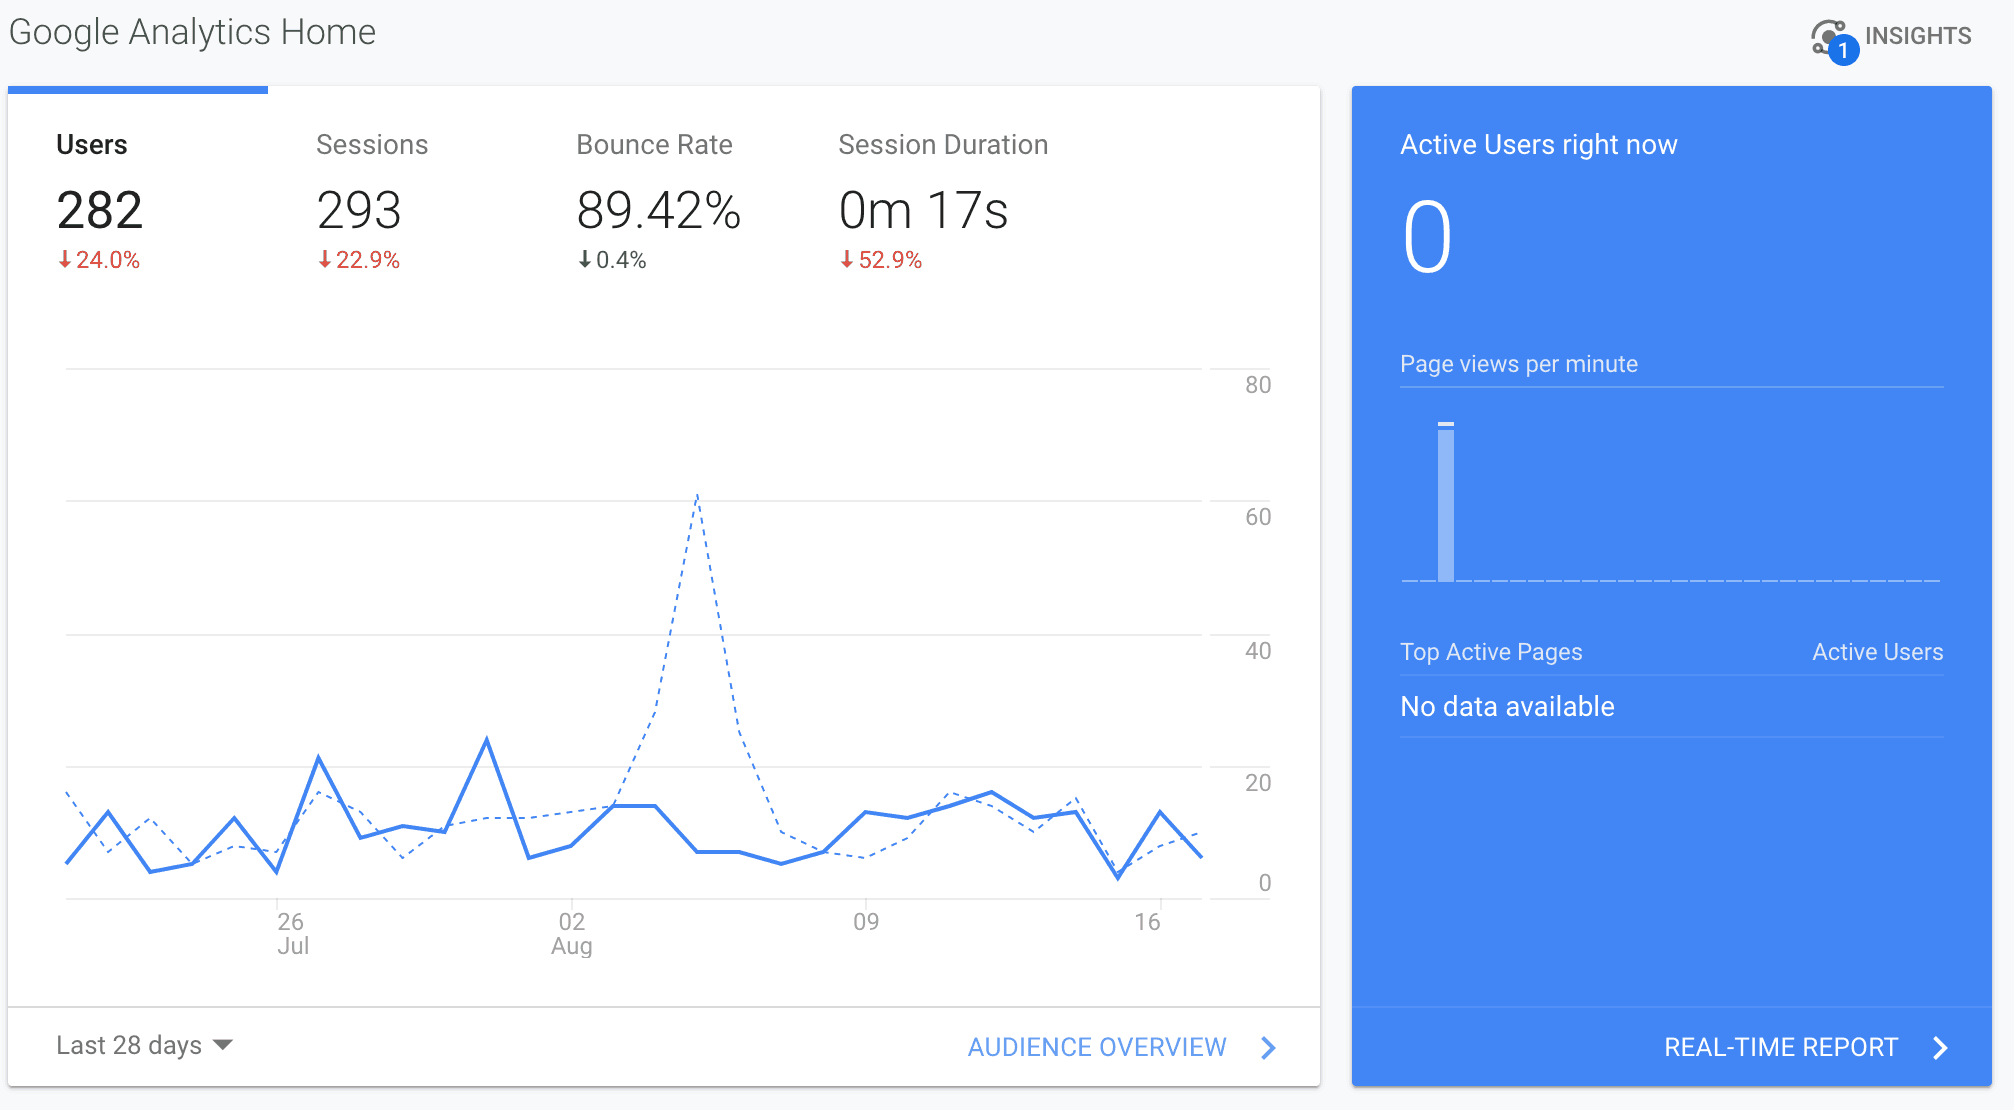 Google Analytics screenshot showing 282 users, 293 sessions, 89.42% bounce rate and 17 seconds as the average session duration